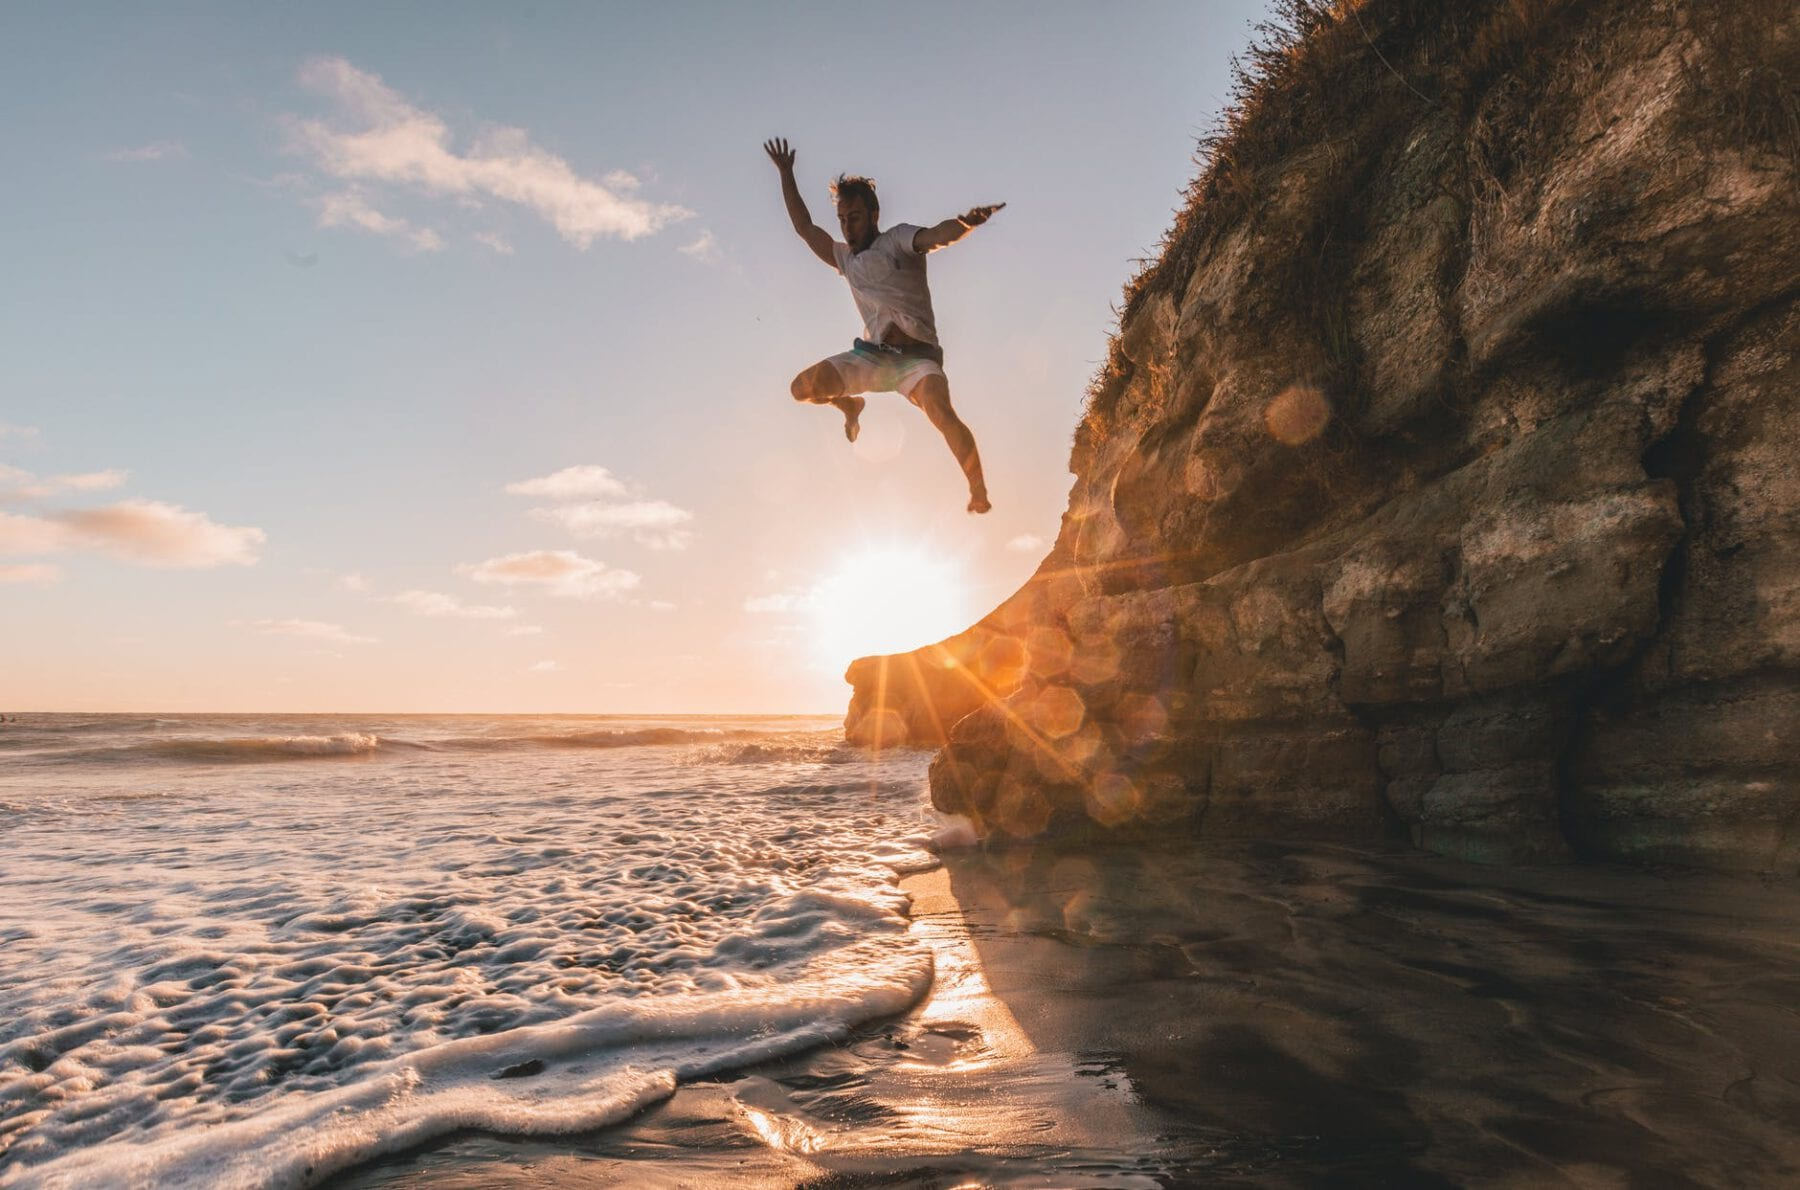 man jumps from cliff to water